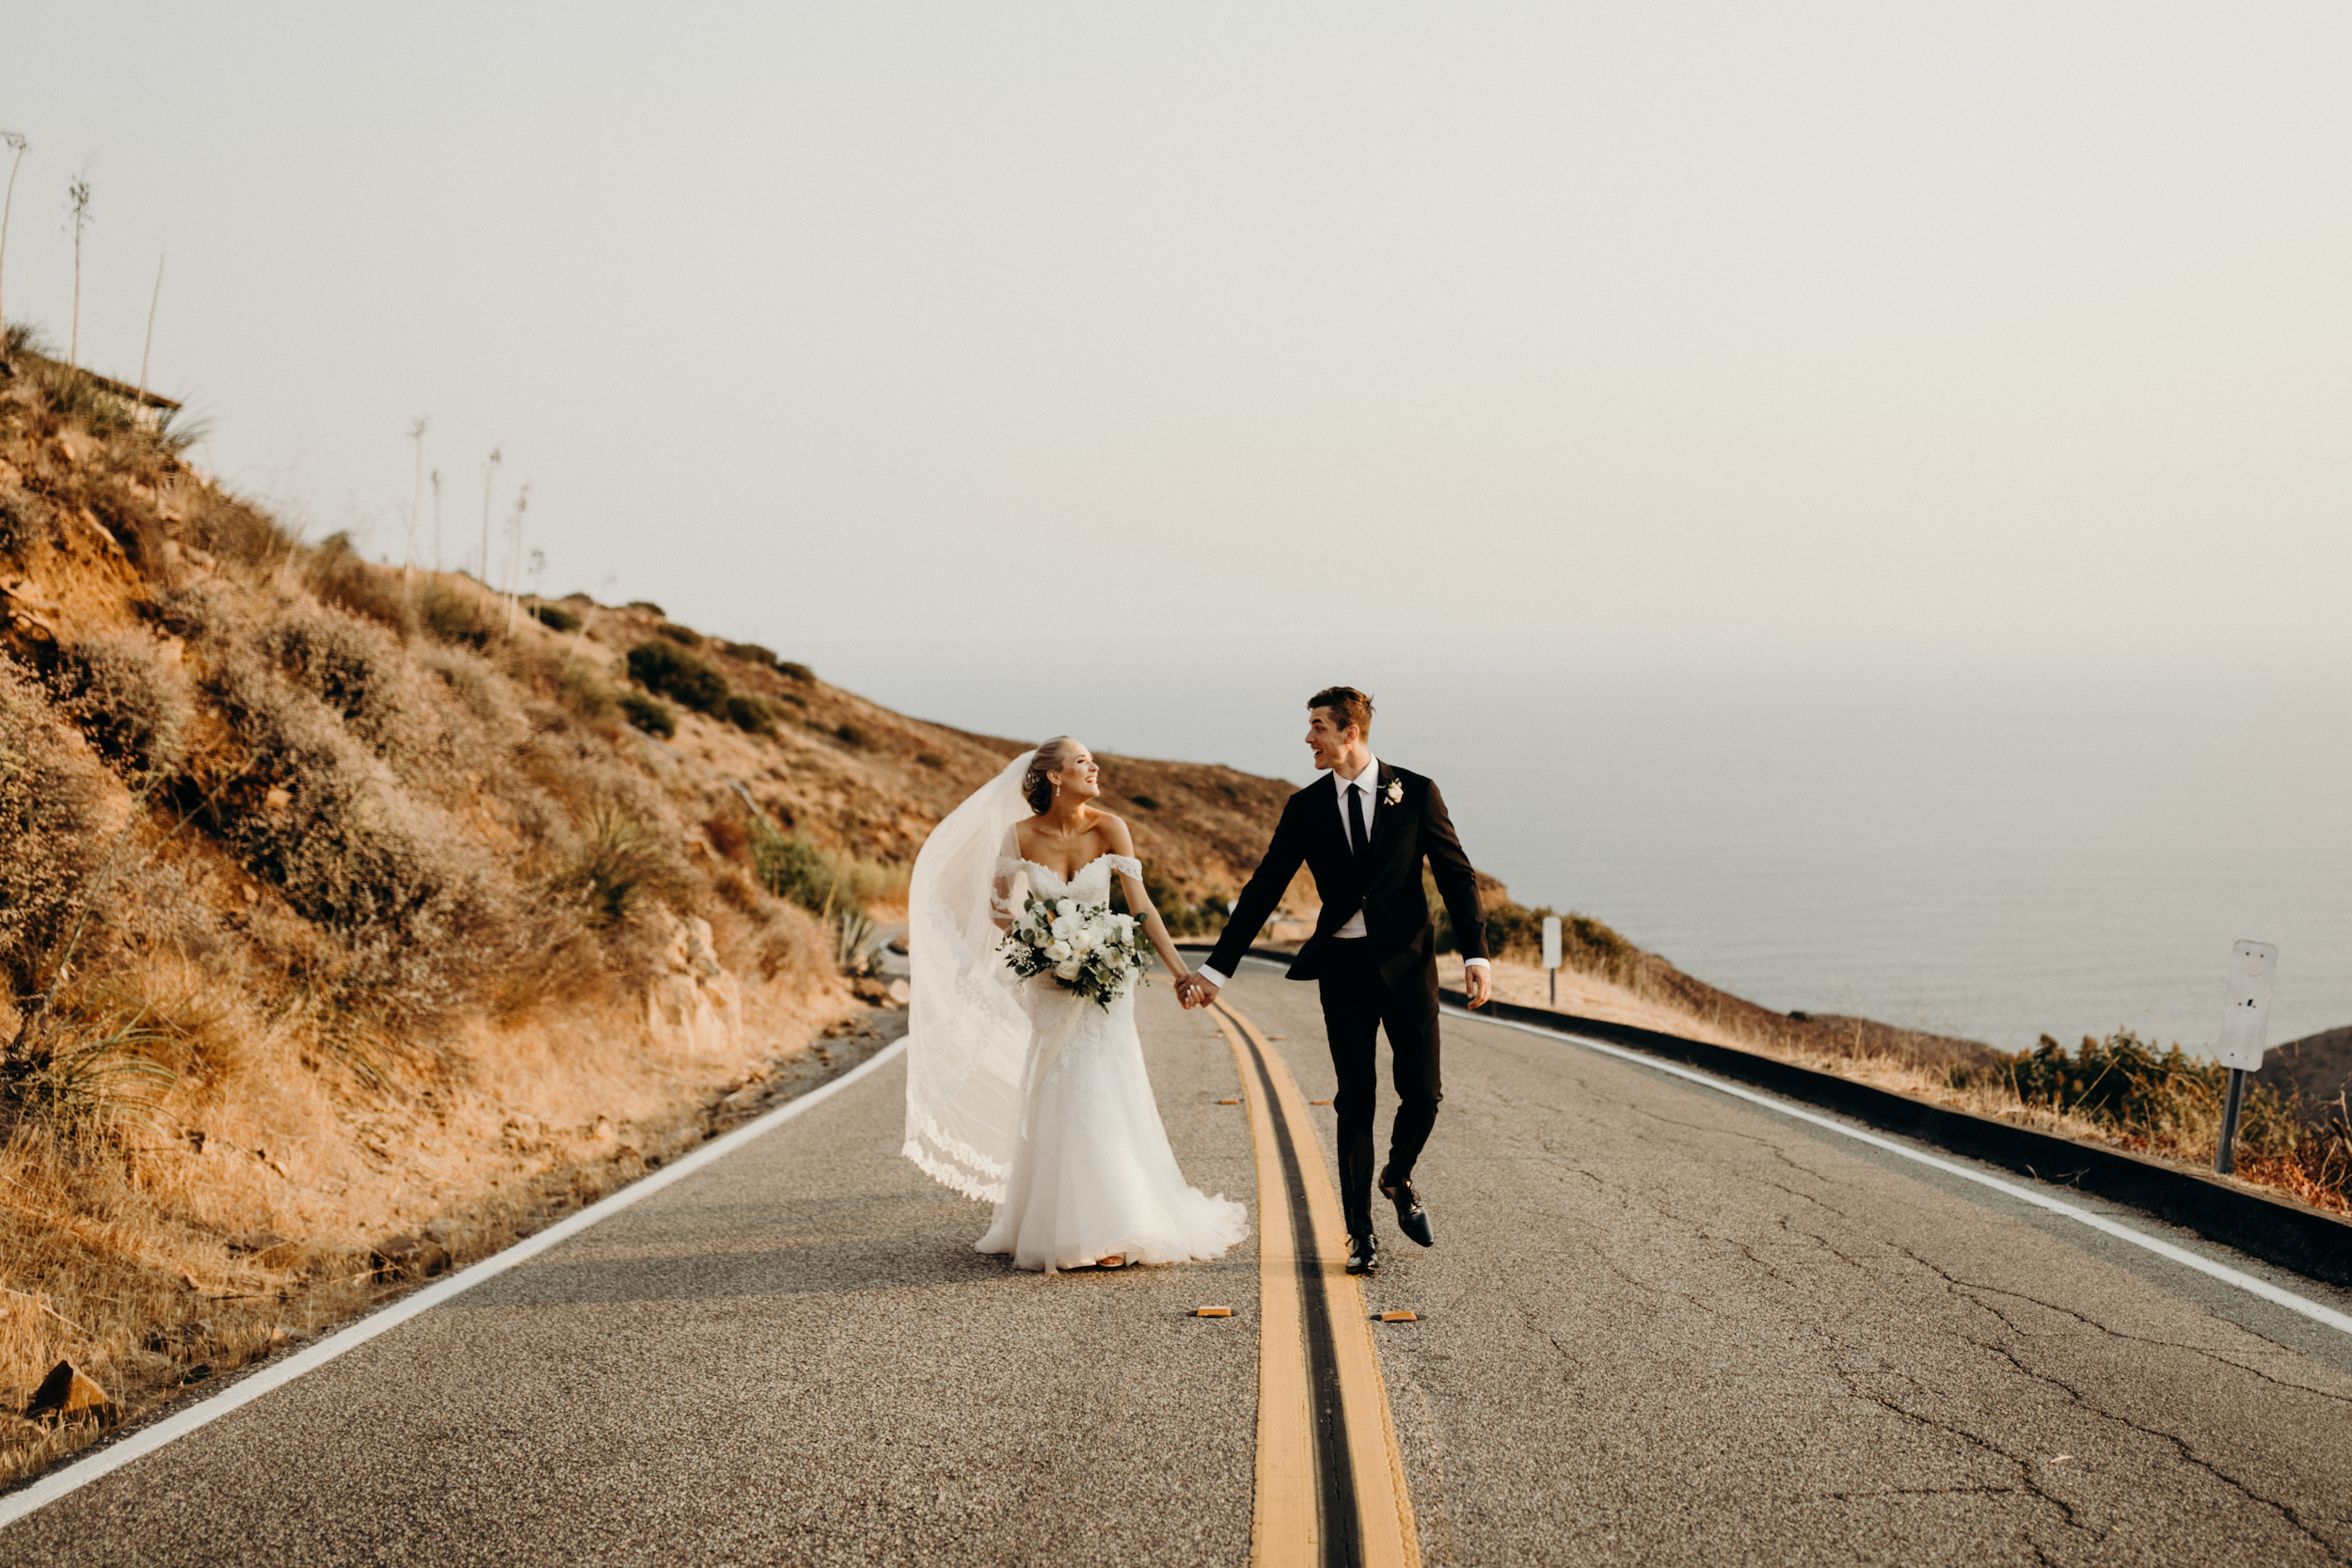 B + M in Malibu California - Victoria Bonvicini Photography-795.jpg